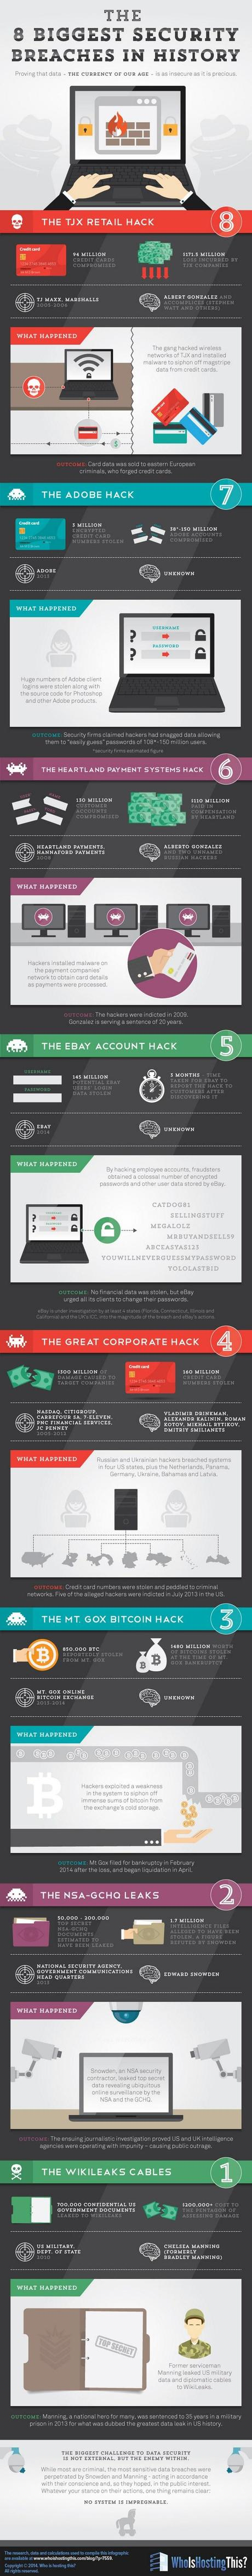 biggest-security-breaches-infographic